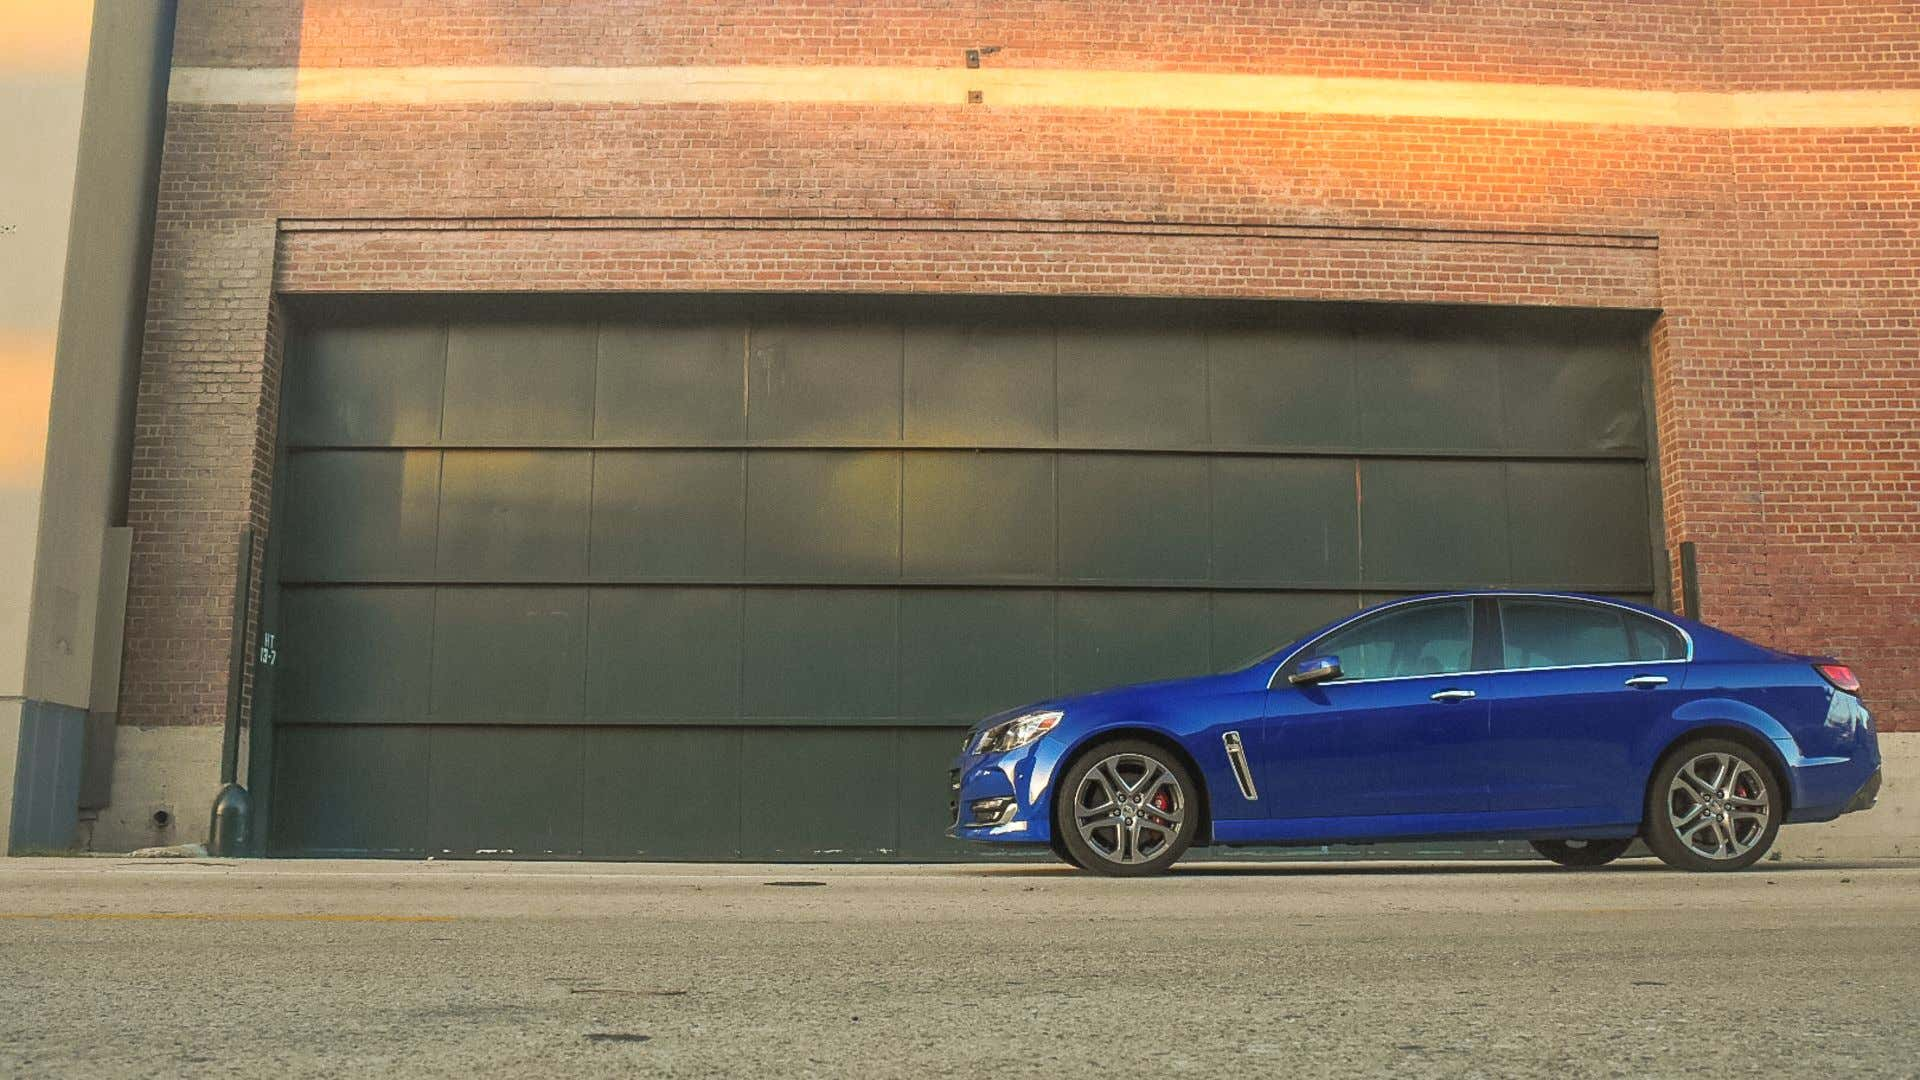 A blue Chevy SS.